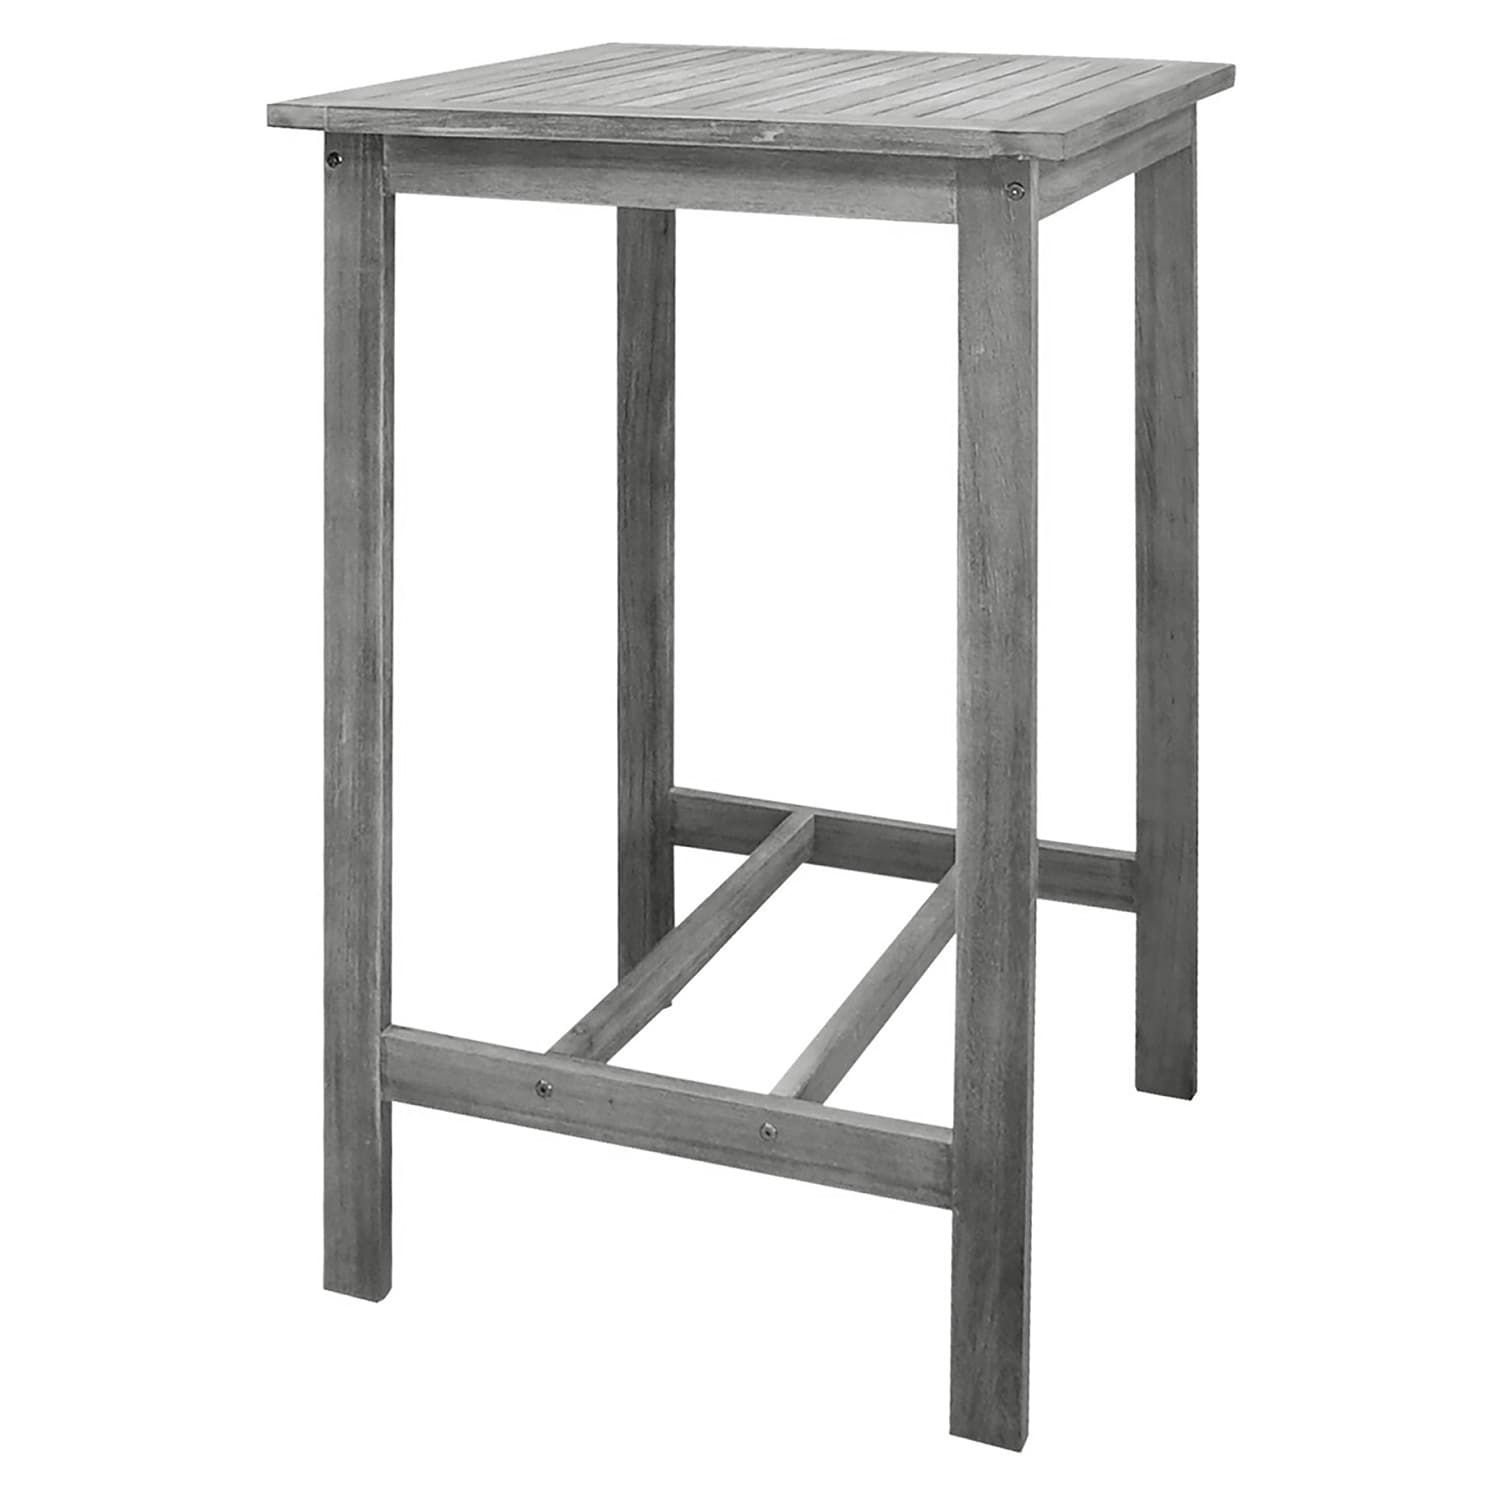 Siesta Gray Outdoor Hand Scraped Wood Bar Table | Products Regarding Parsons White Marble Top & Dark Steel Base 48x16 Console Tables (View 17 of 30)